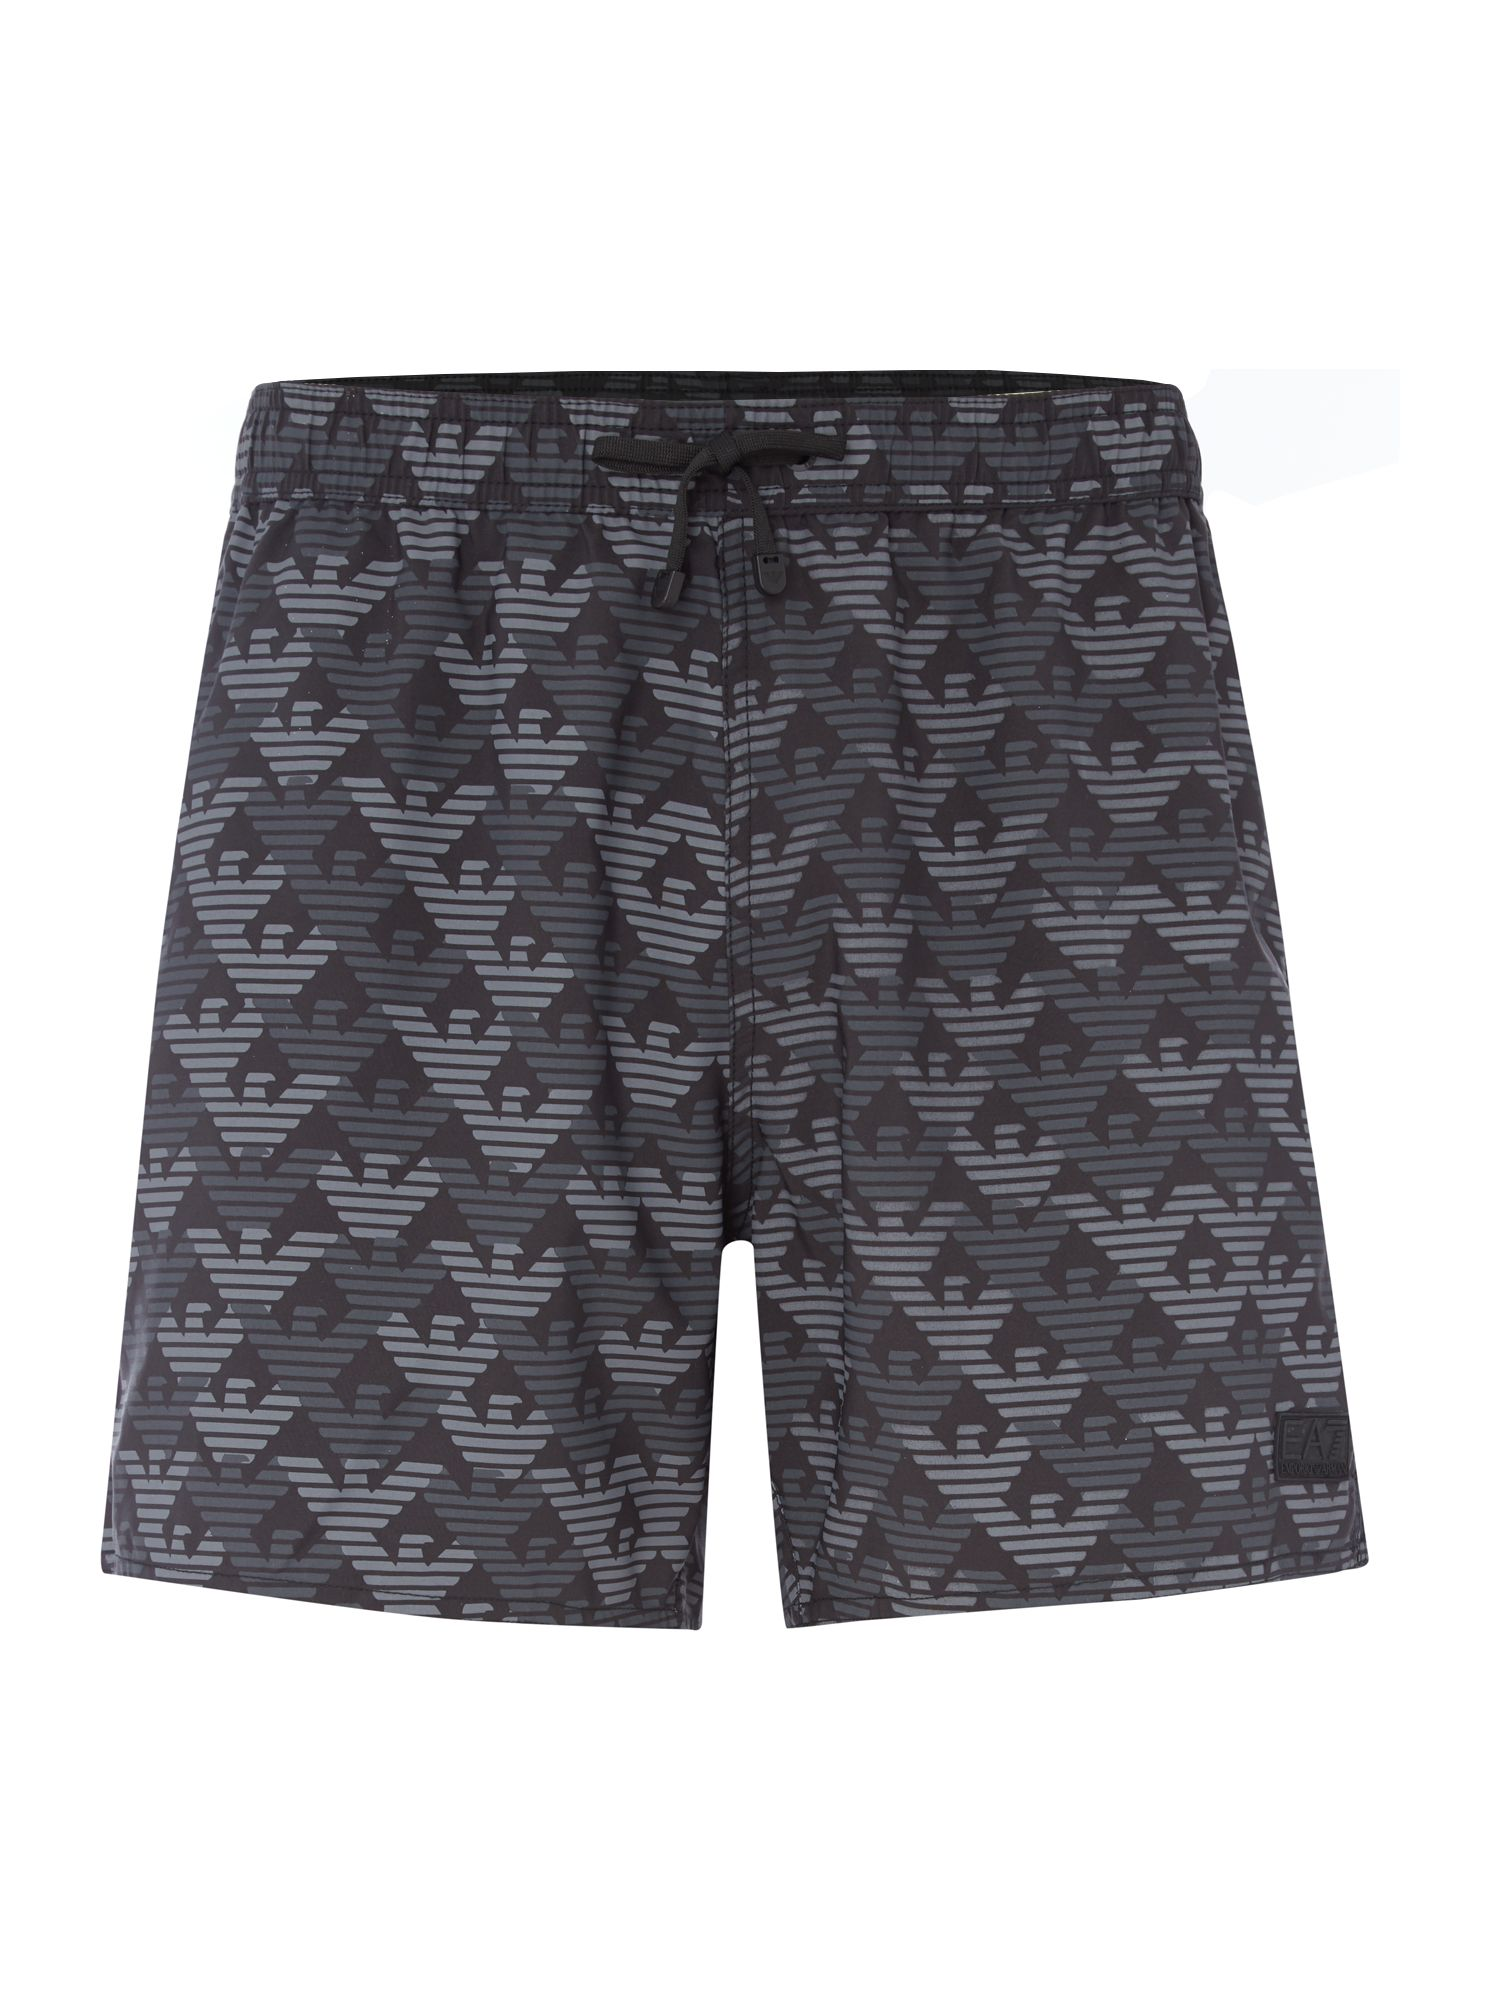 Men's EA7 All over print logo shorts, Black